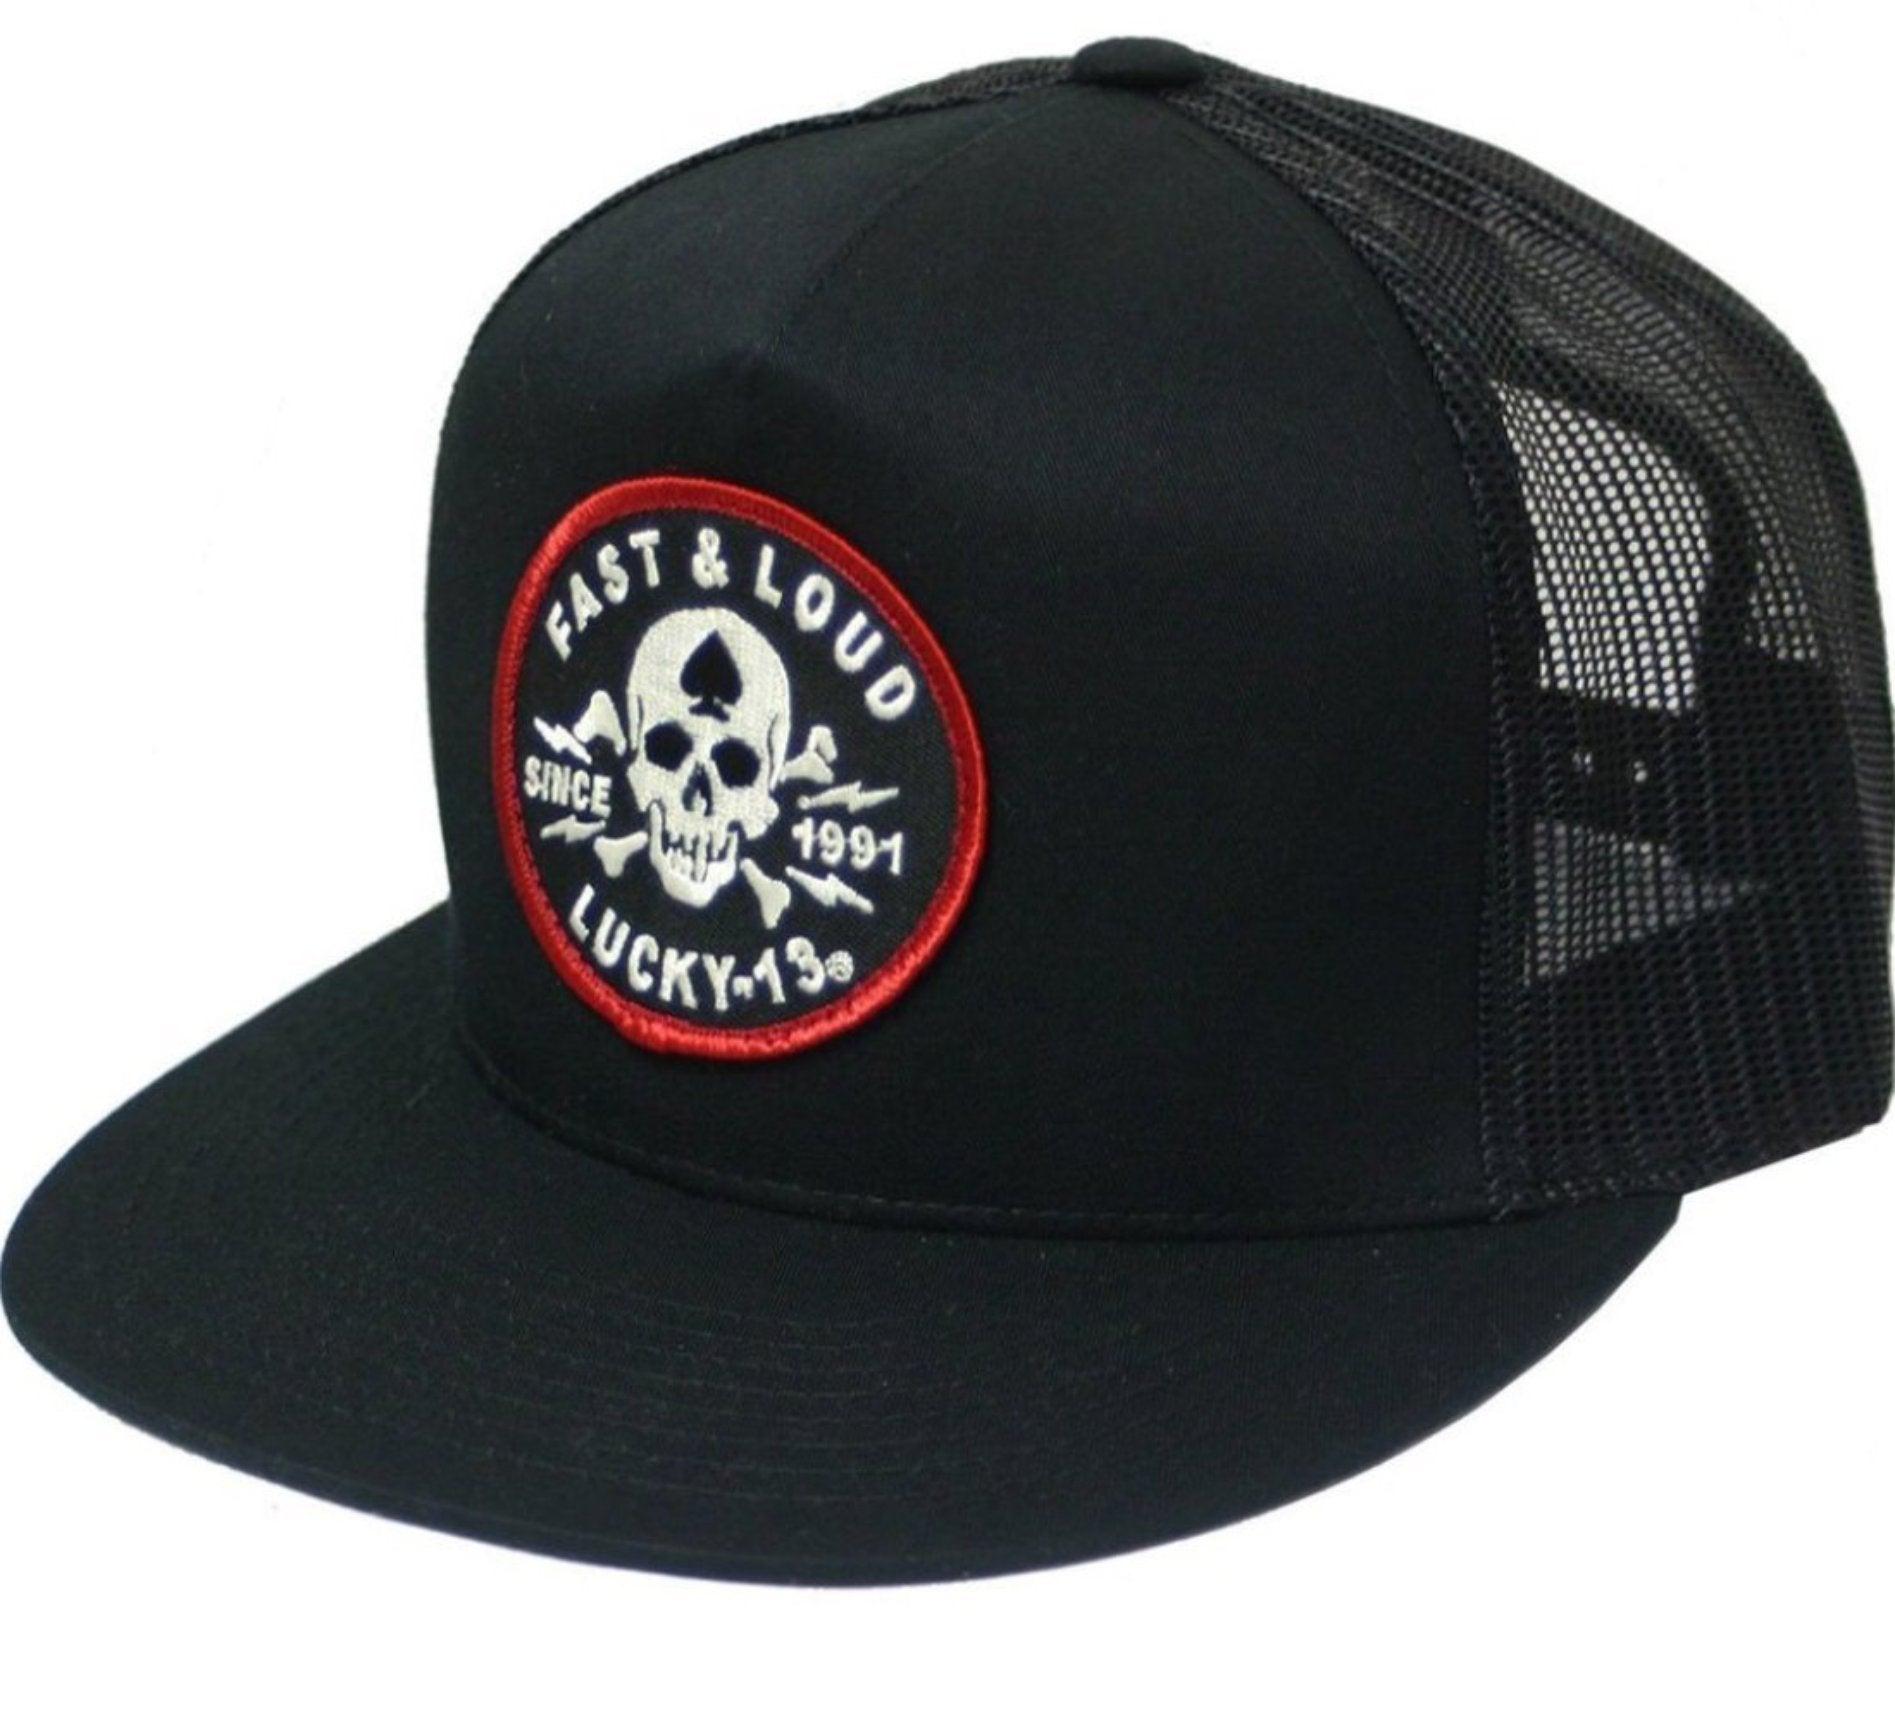 The FAST & LOUD Trucker Cap - BLACK